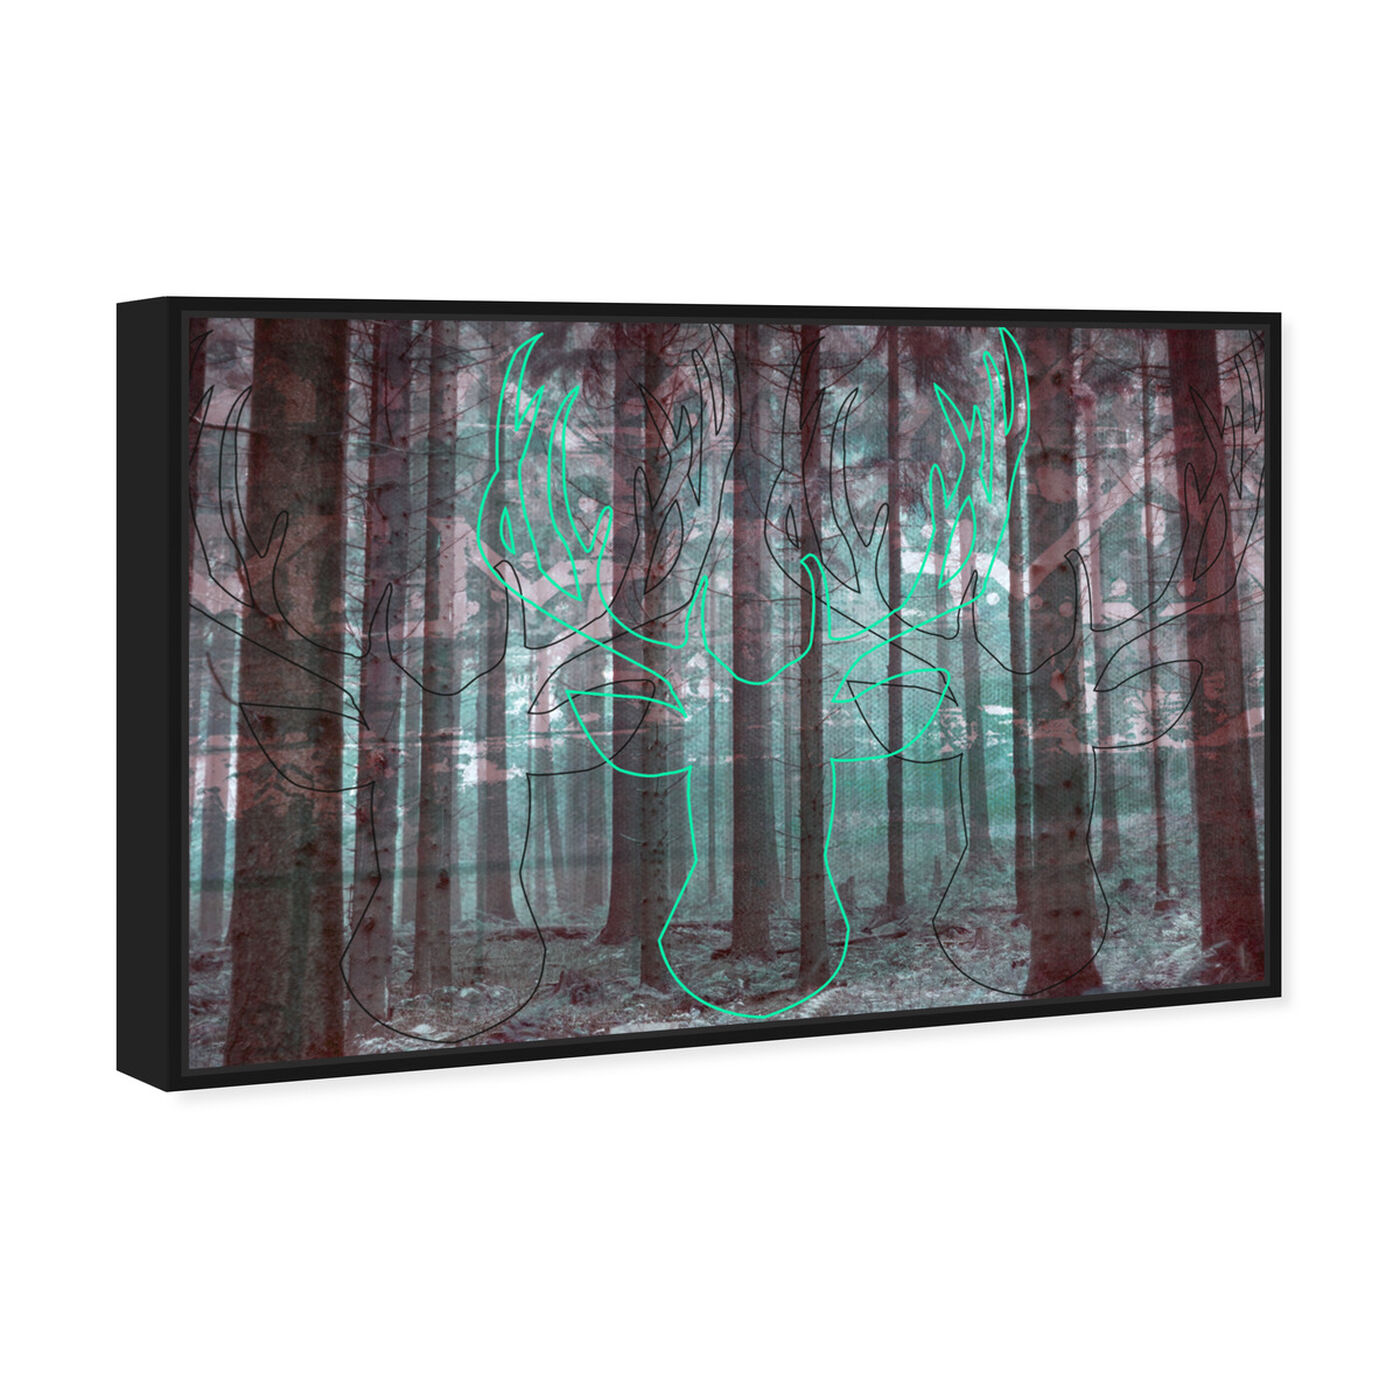 Angled view of Oh My Deer! featuring nature and landscape and forest landscapes art.